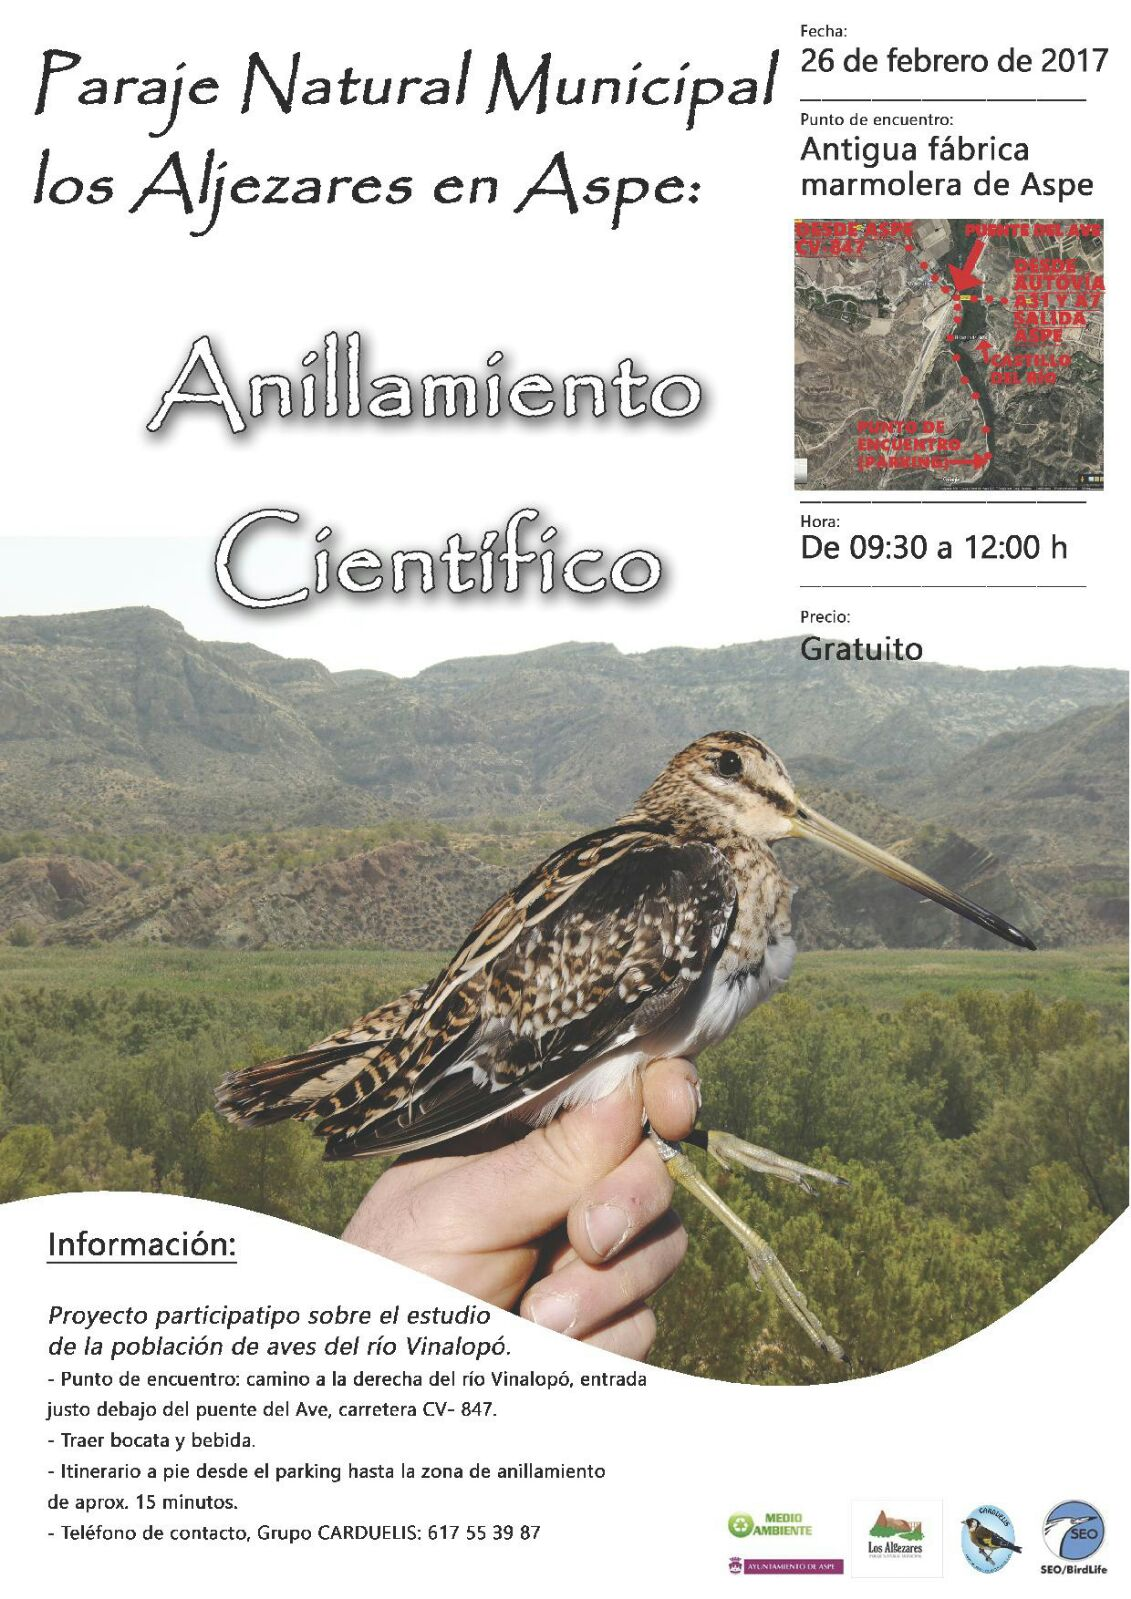 WhatsApp Image 2017 02 20 at 18.41.14 1